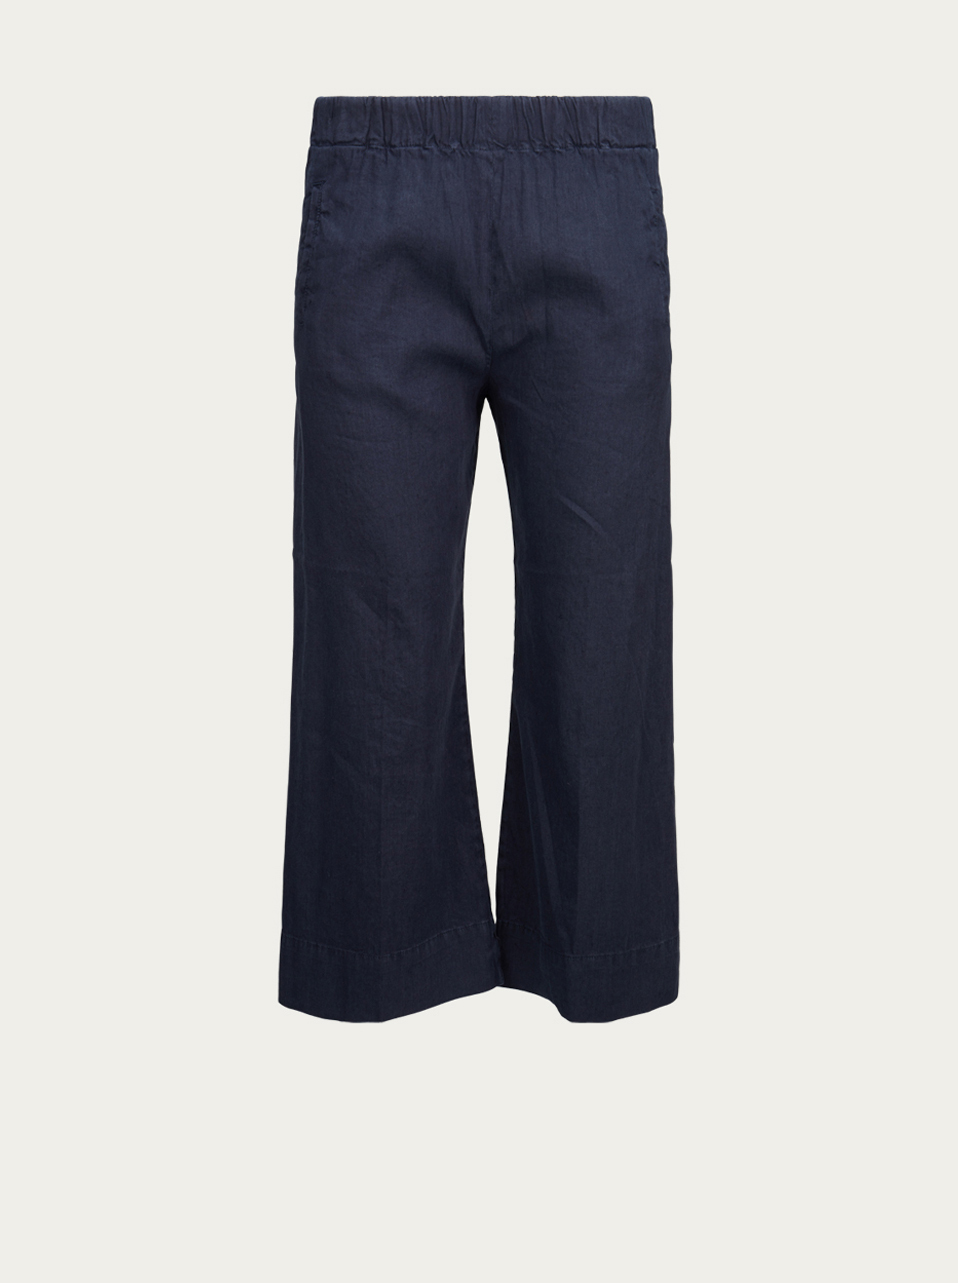 TRUE NYC DENIM Weite Hose in Dunkelblau